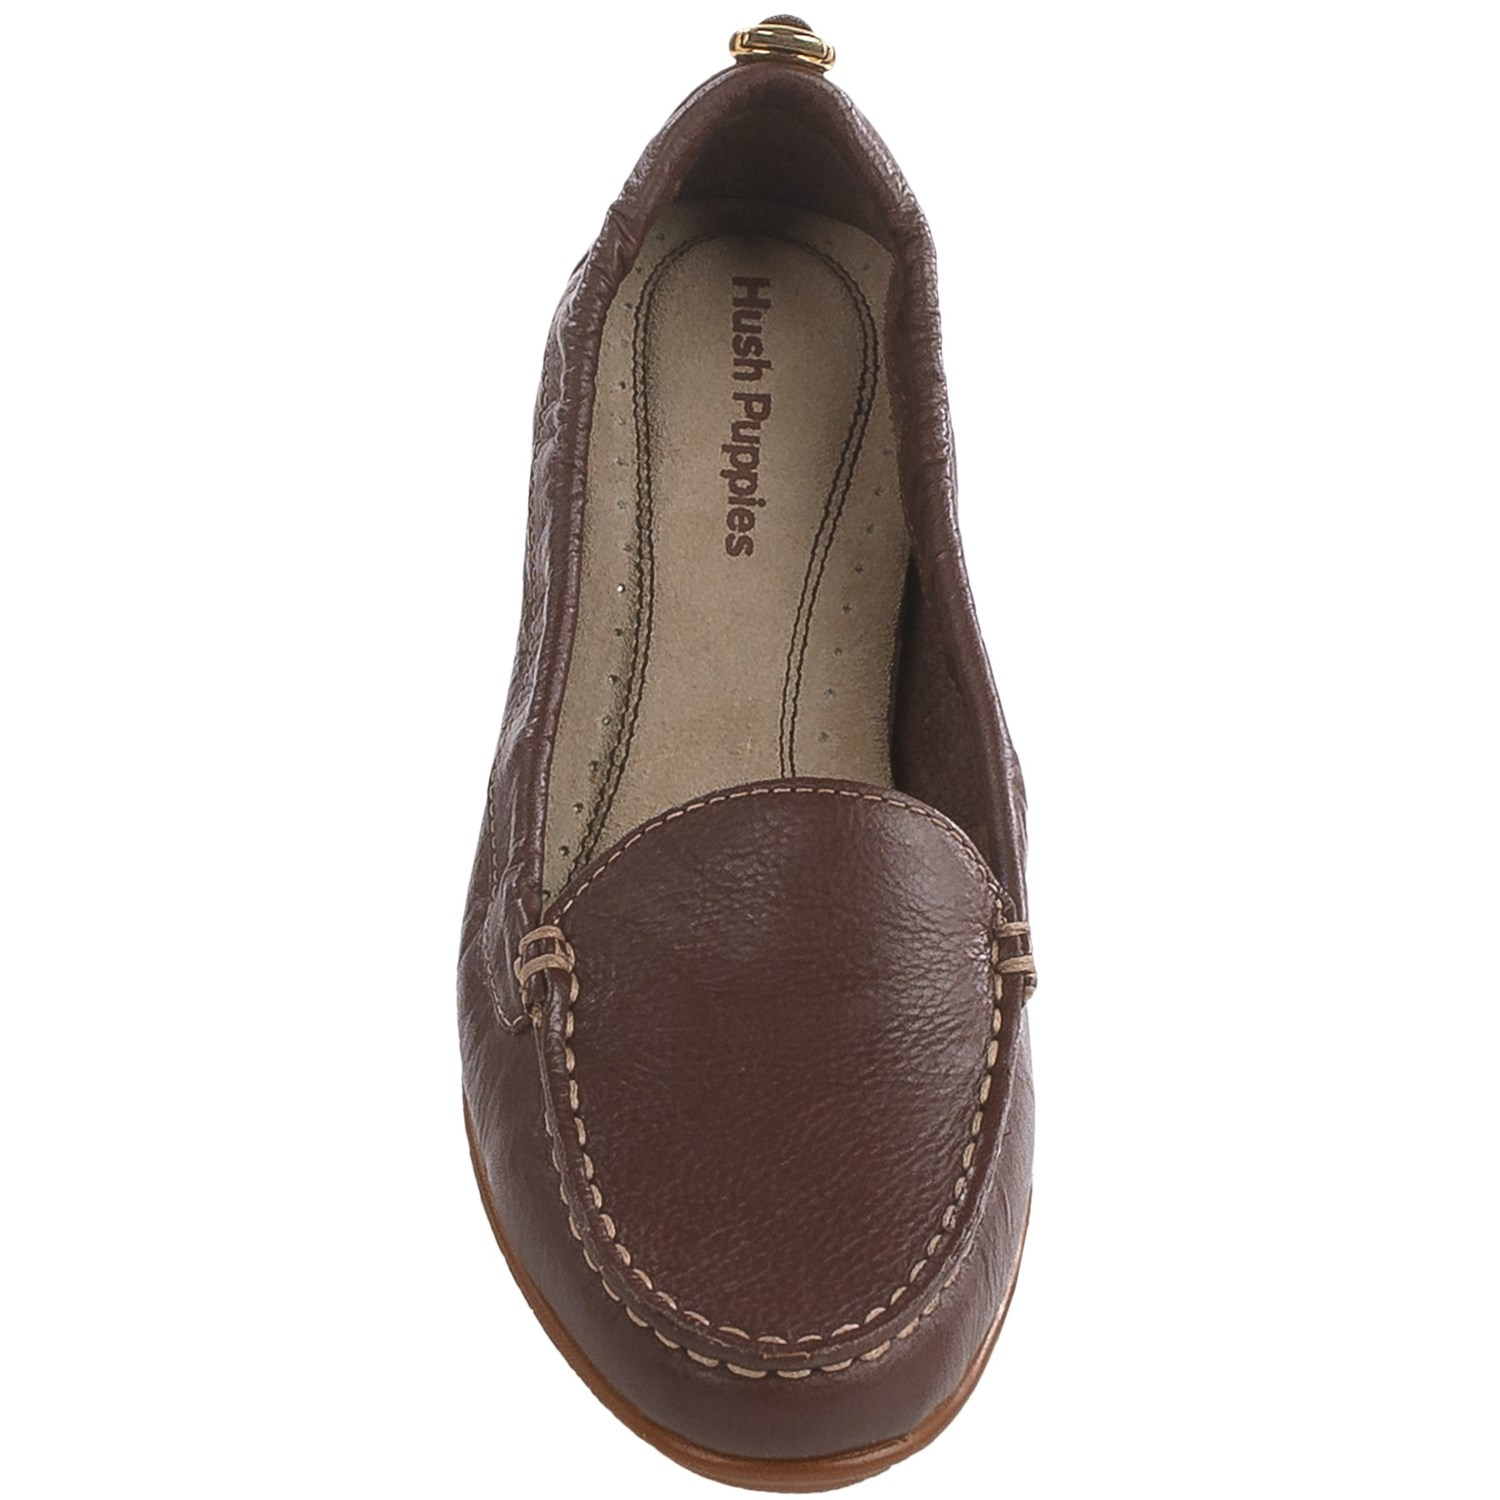 Loafer, Womens Moccasins Hush Puppies